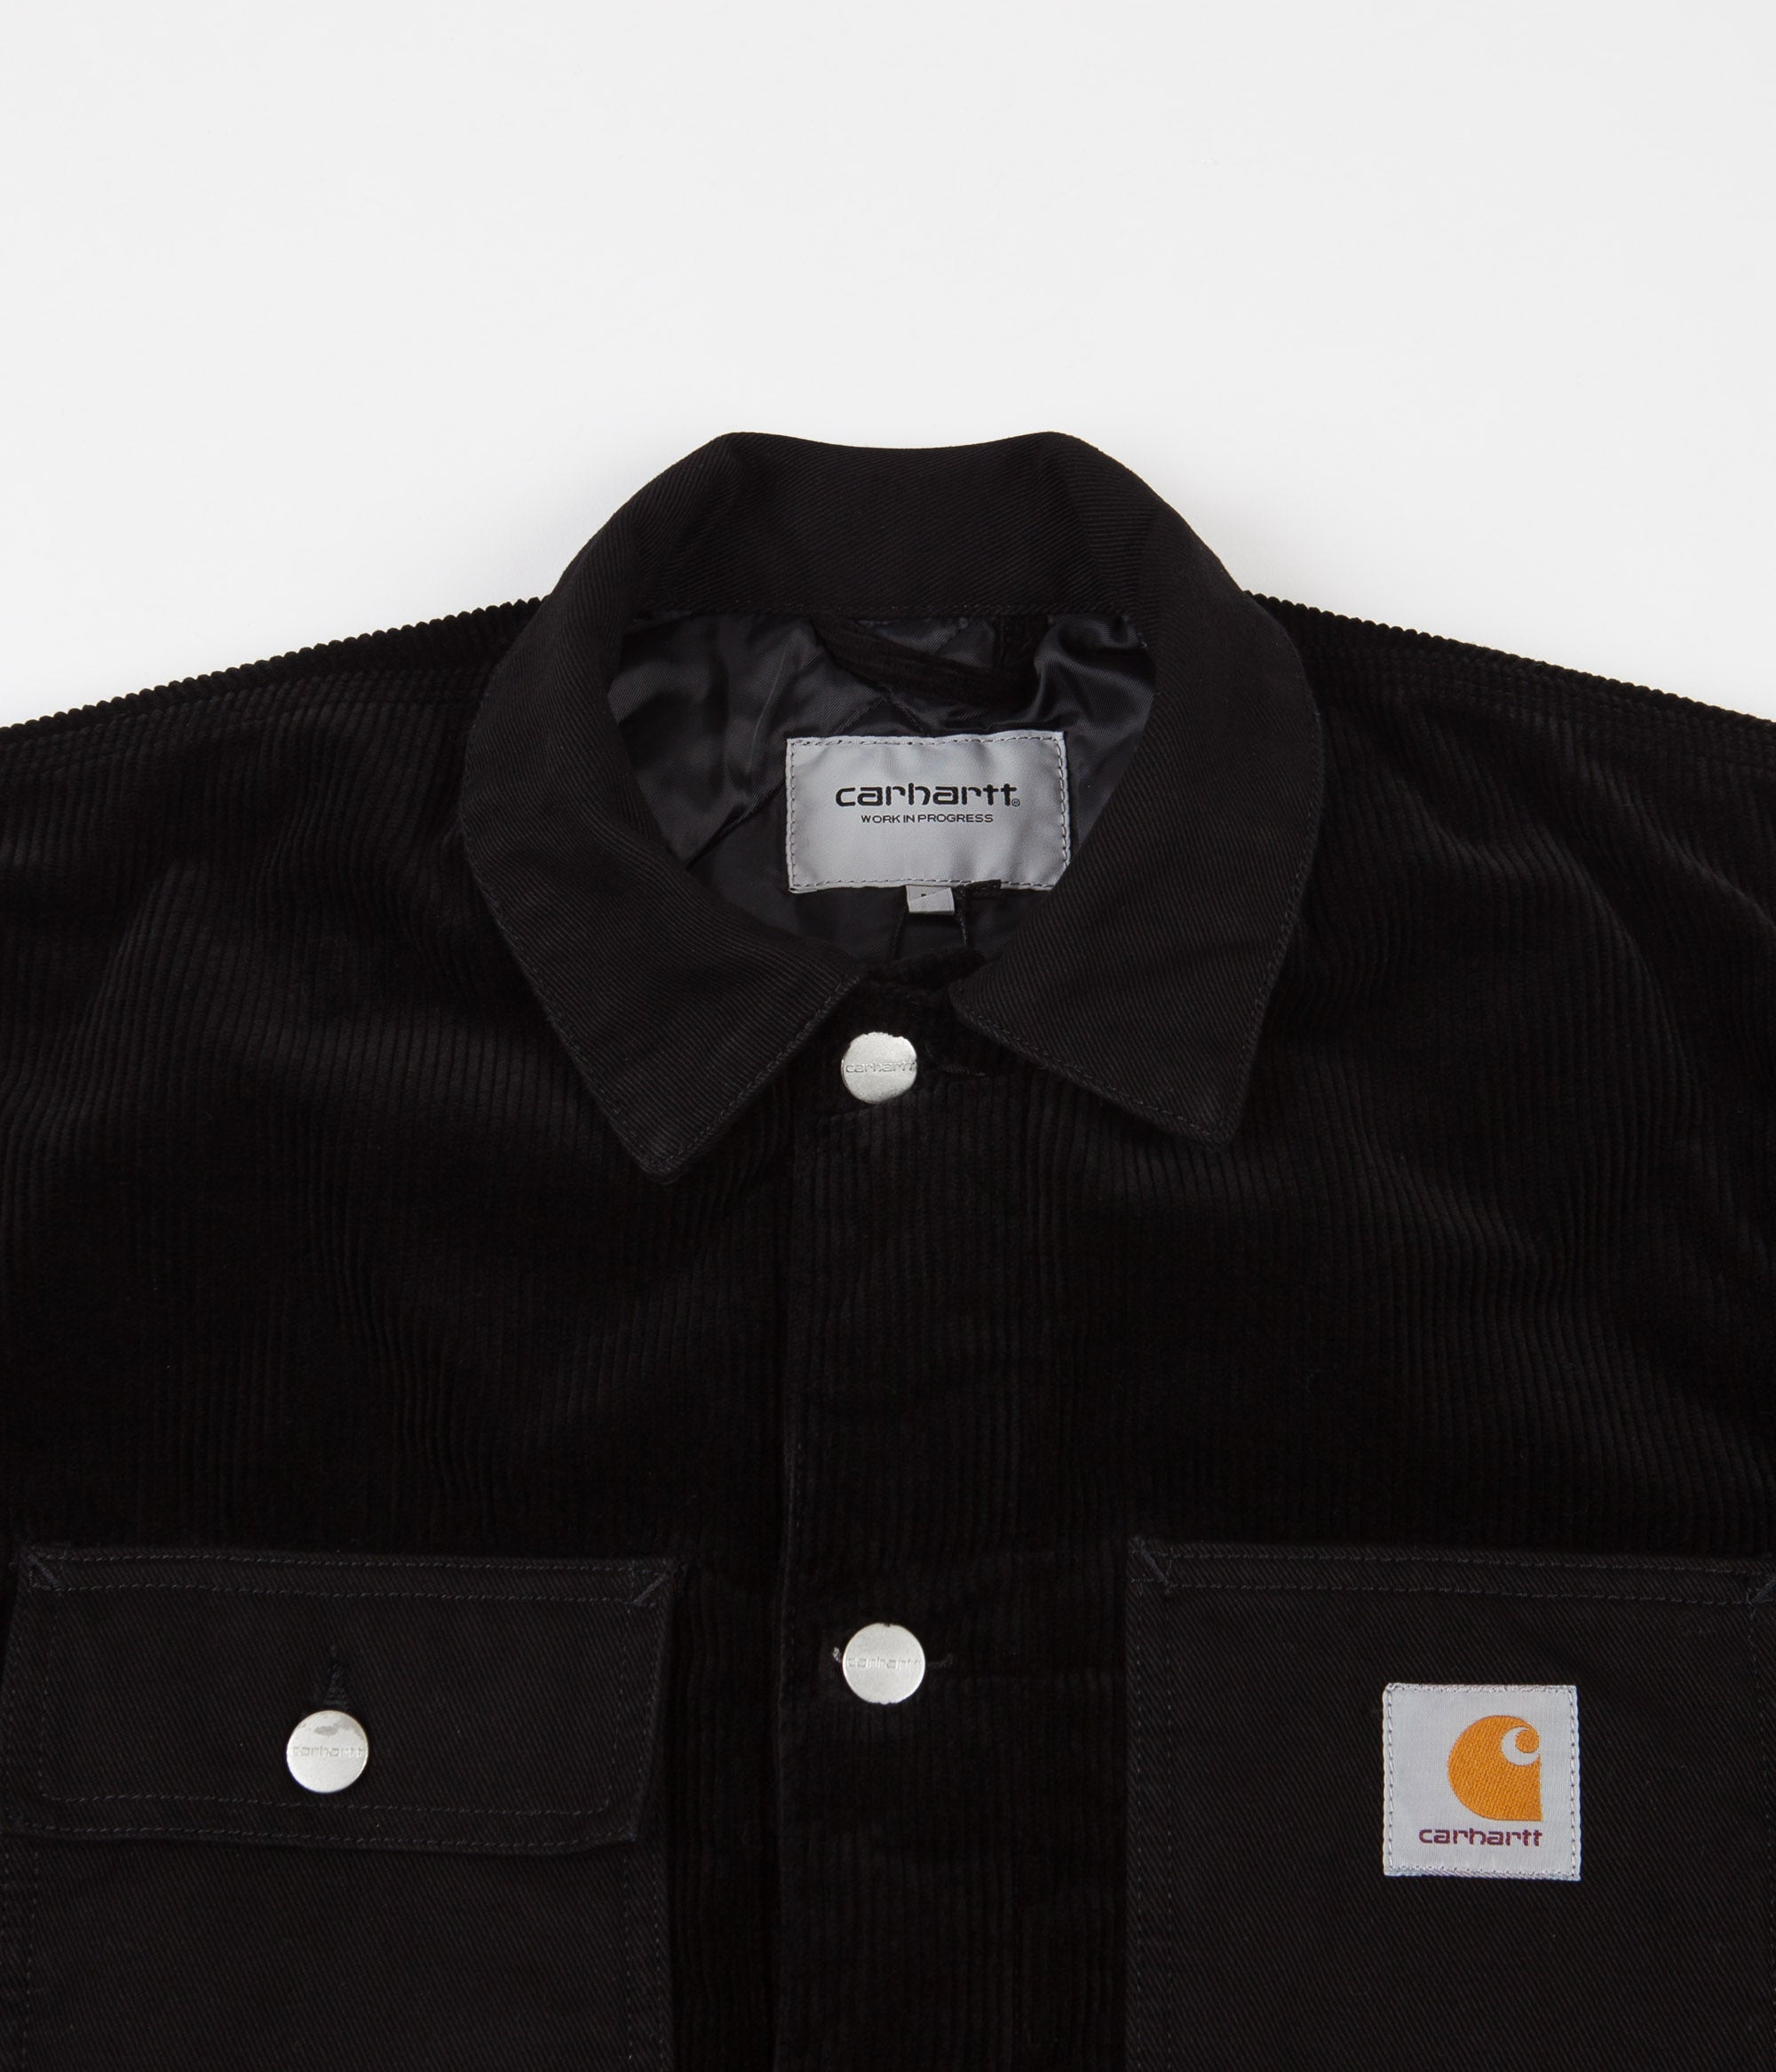 Carhartt Michigan Chore Coat - Black